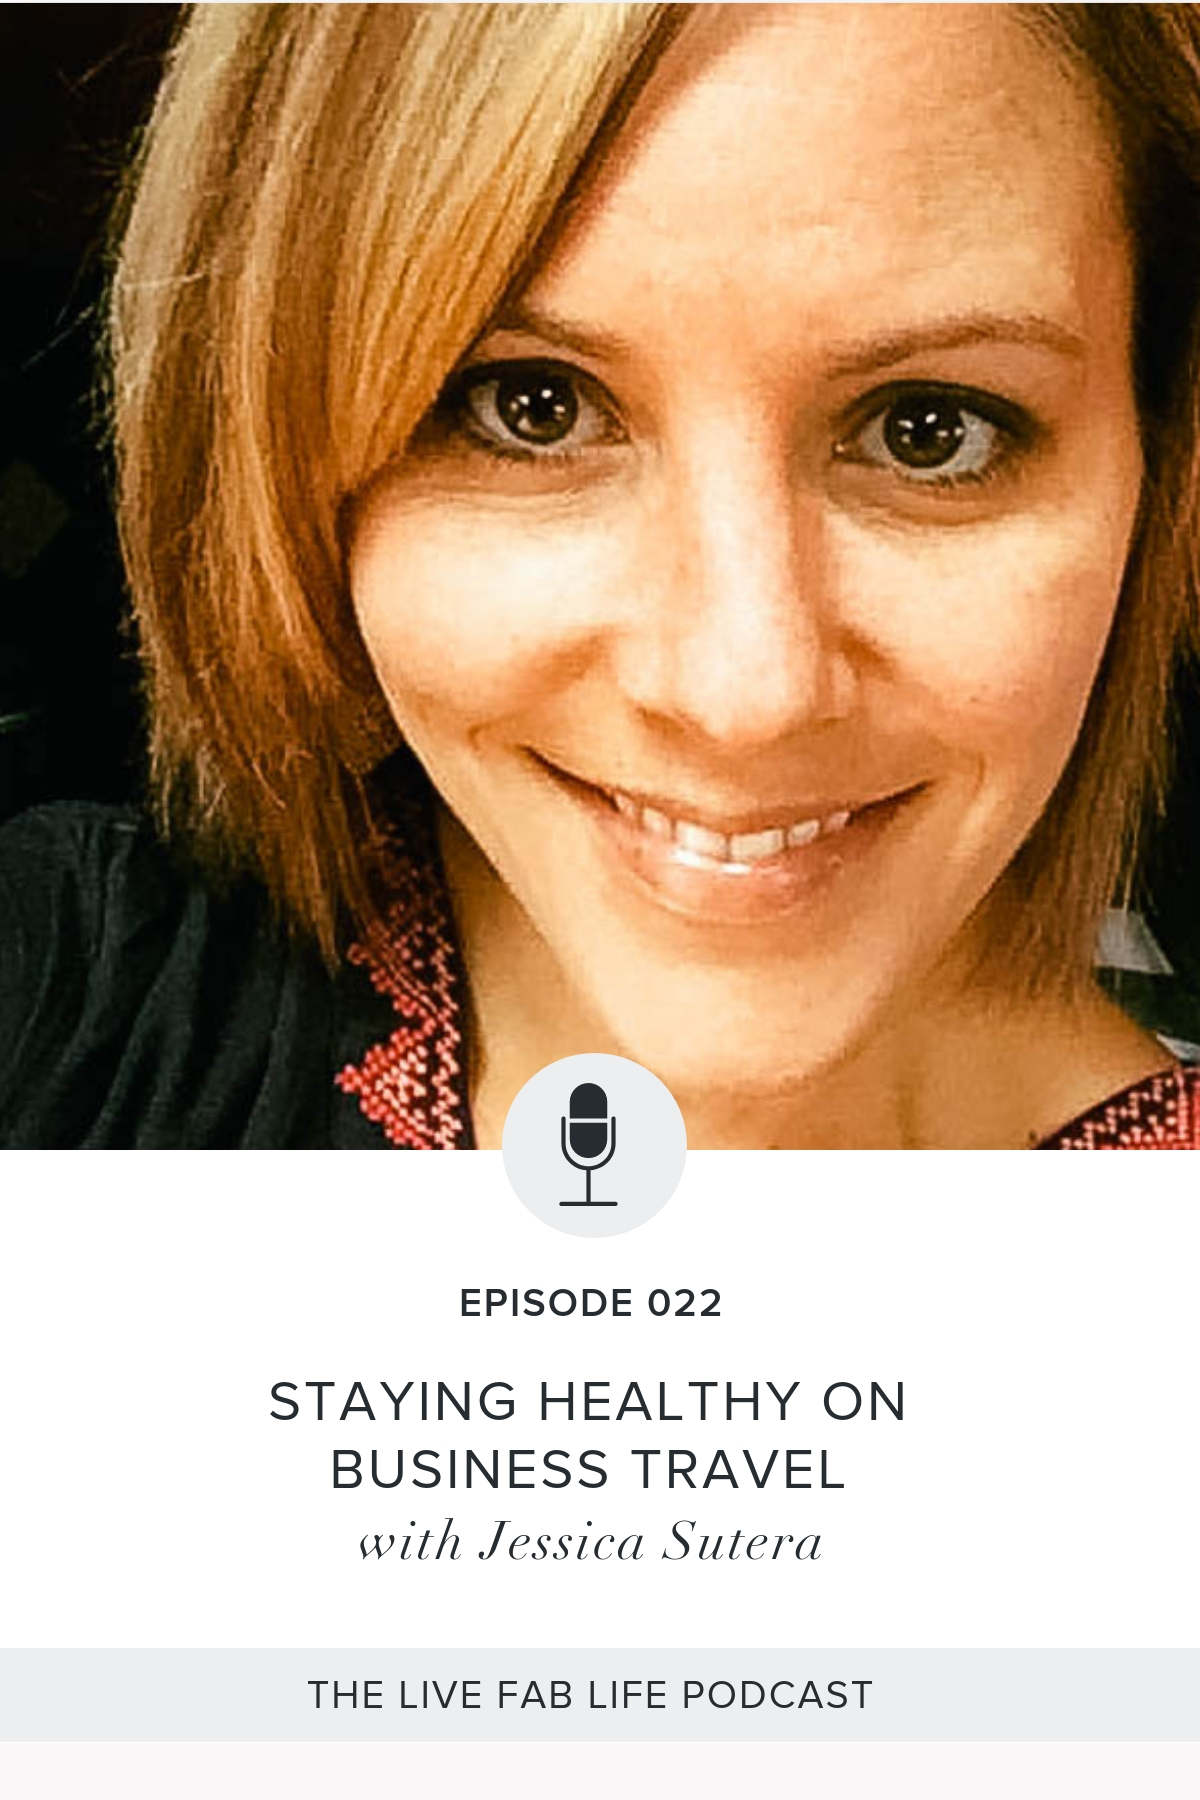 Episode 022: Staying Healthy On Business Travel with Jessica Sutera